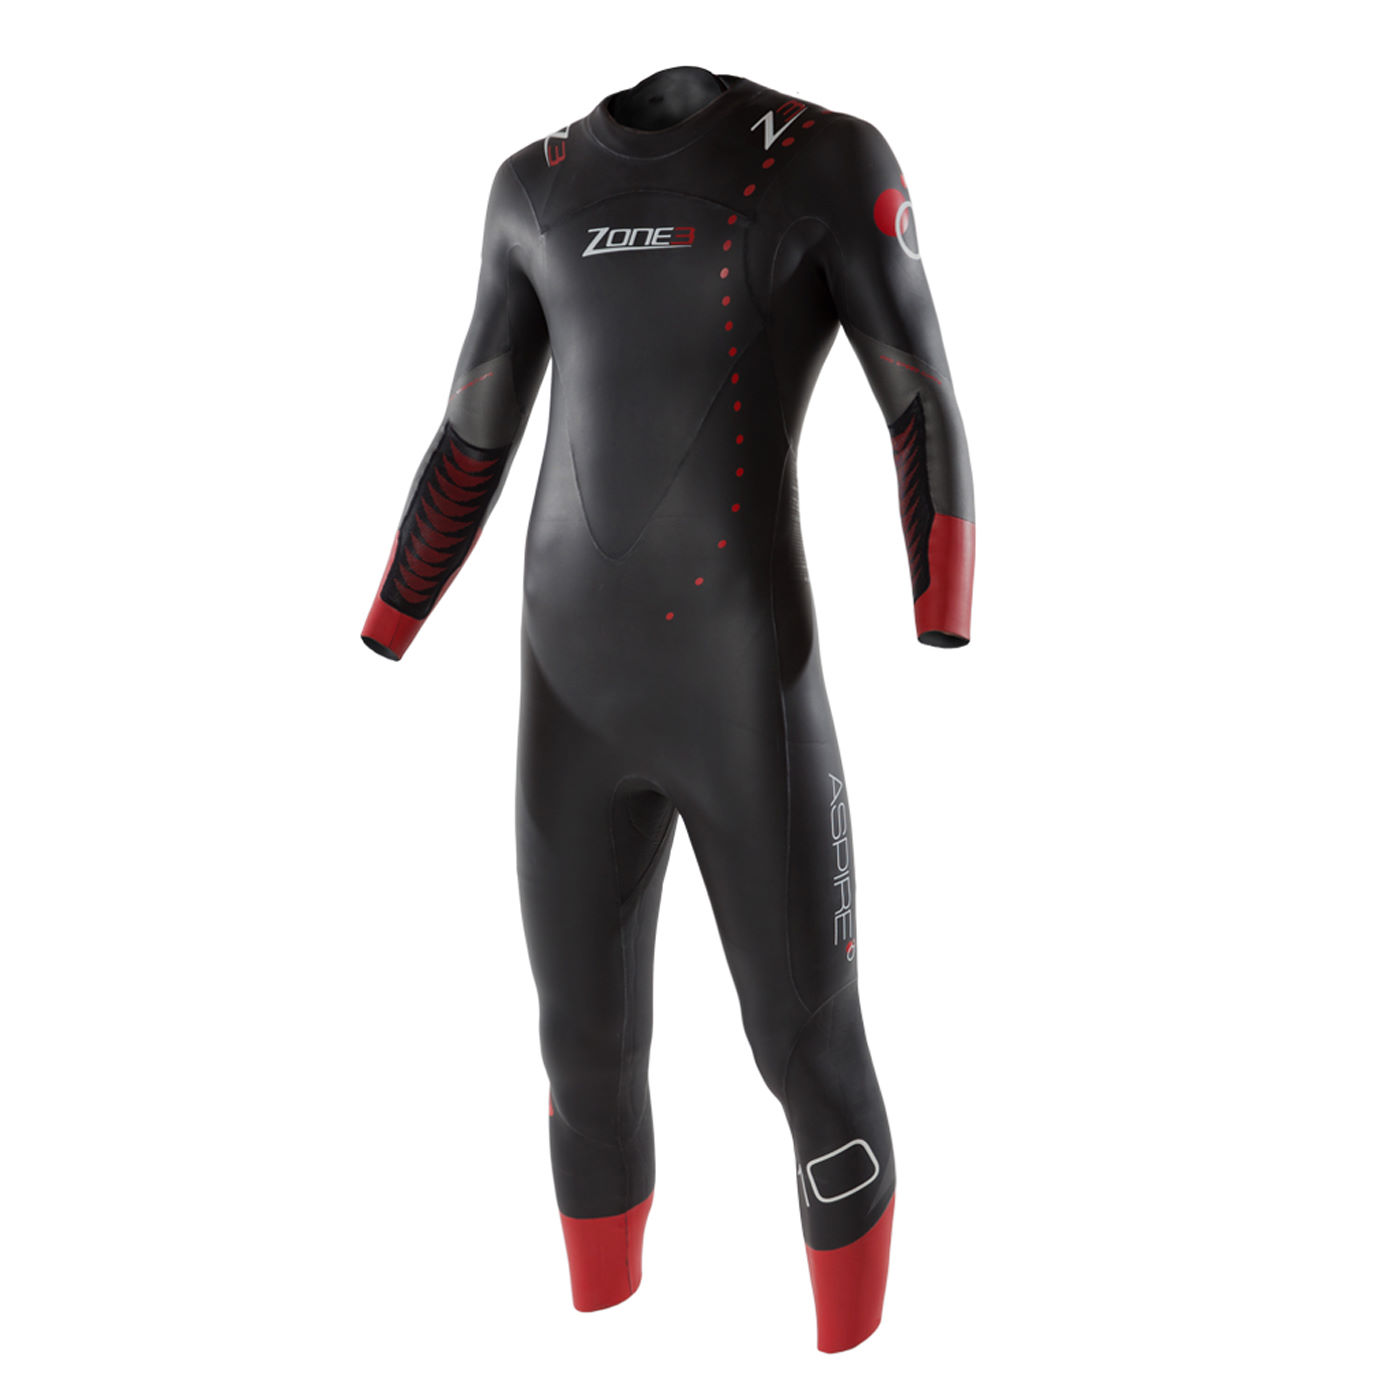 Wiggle | Zone3 Aspire Wetsuit | Wetsuits